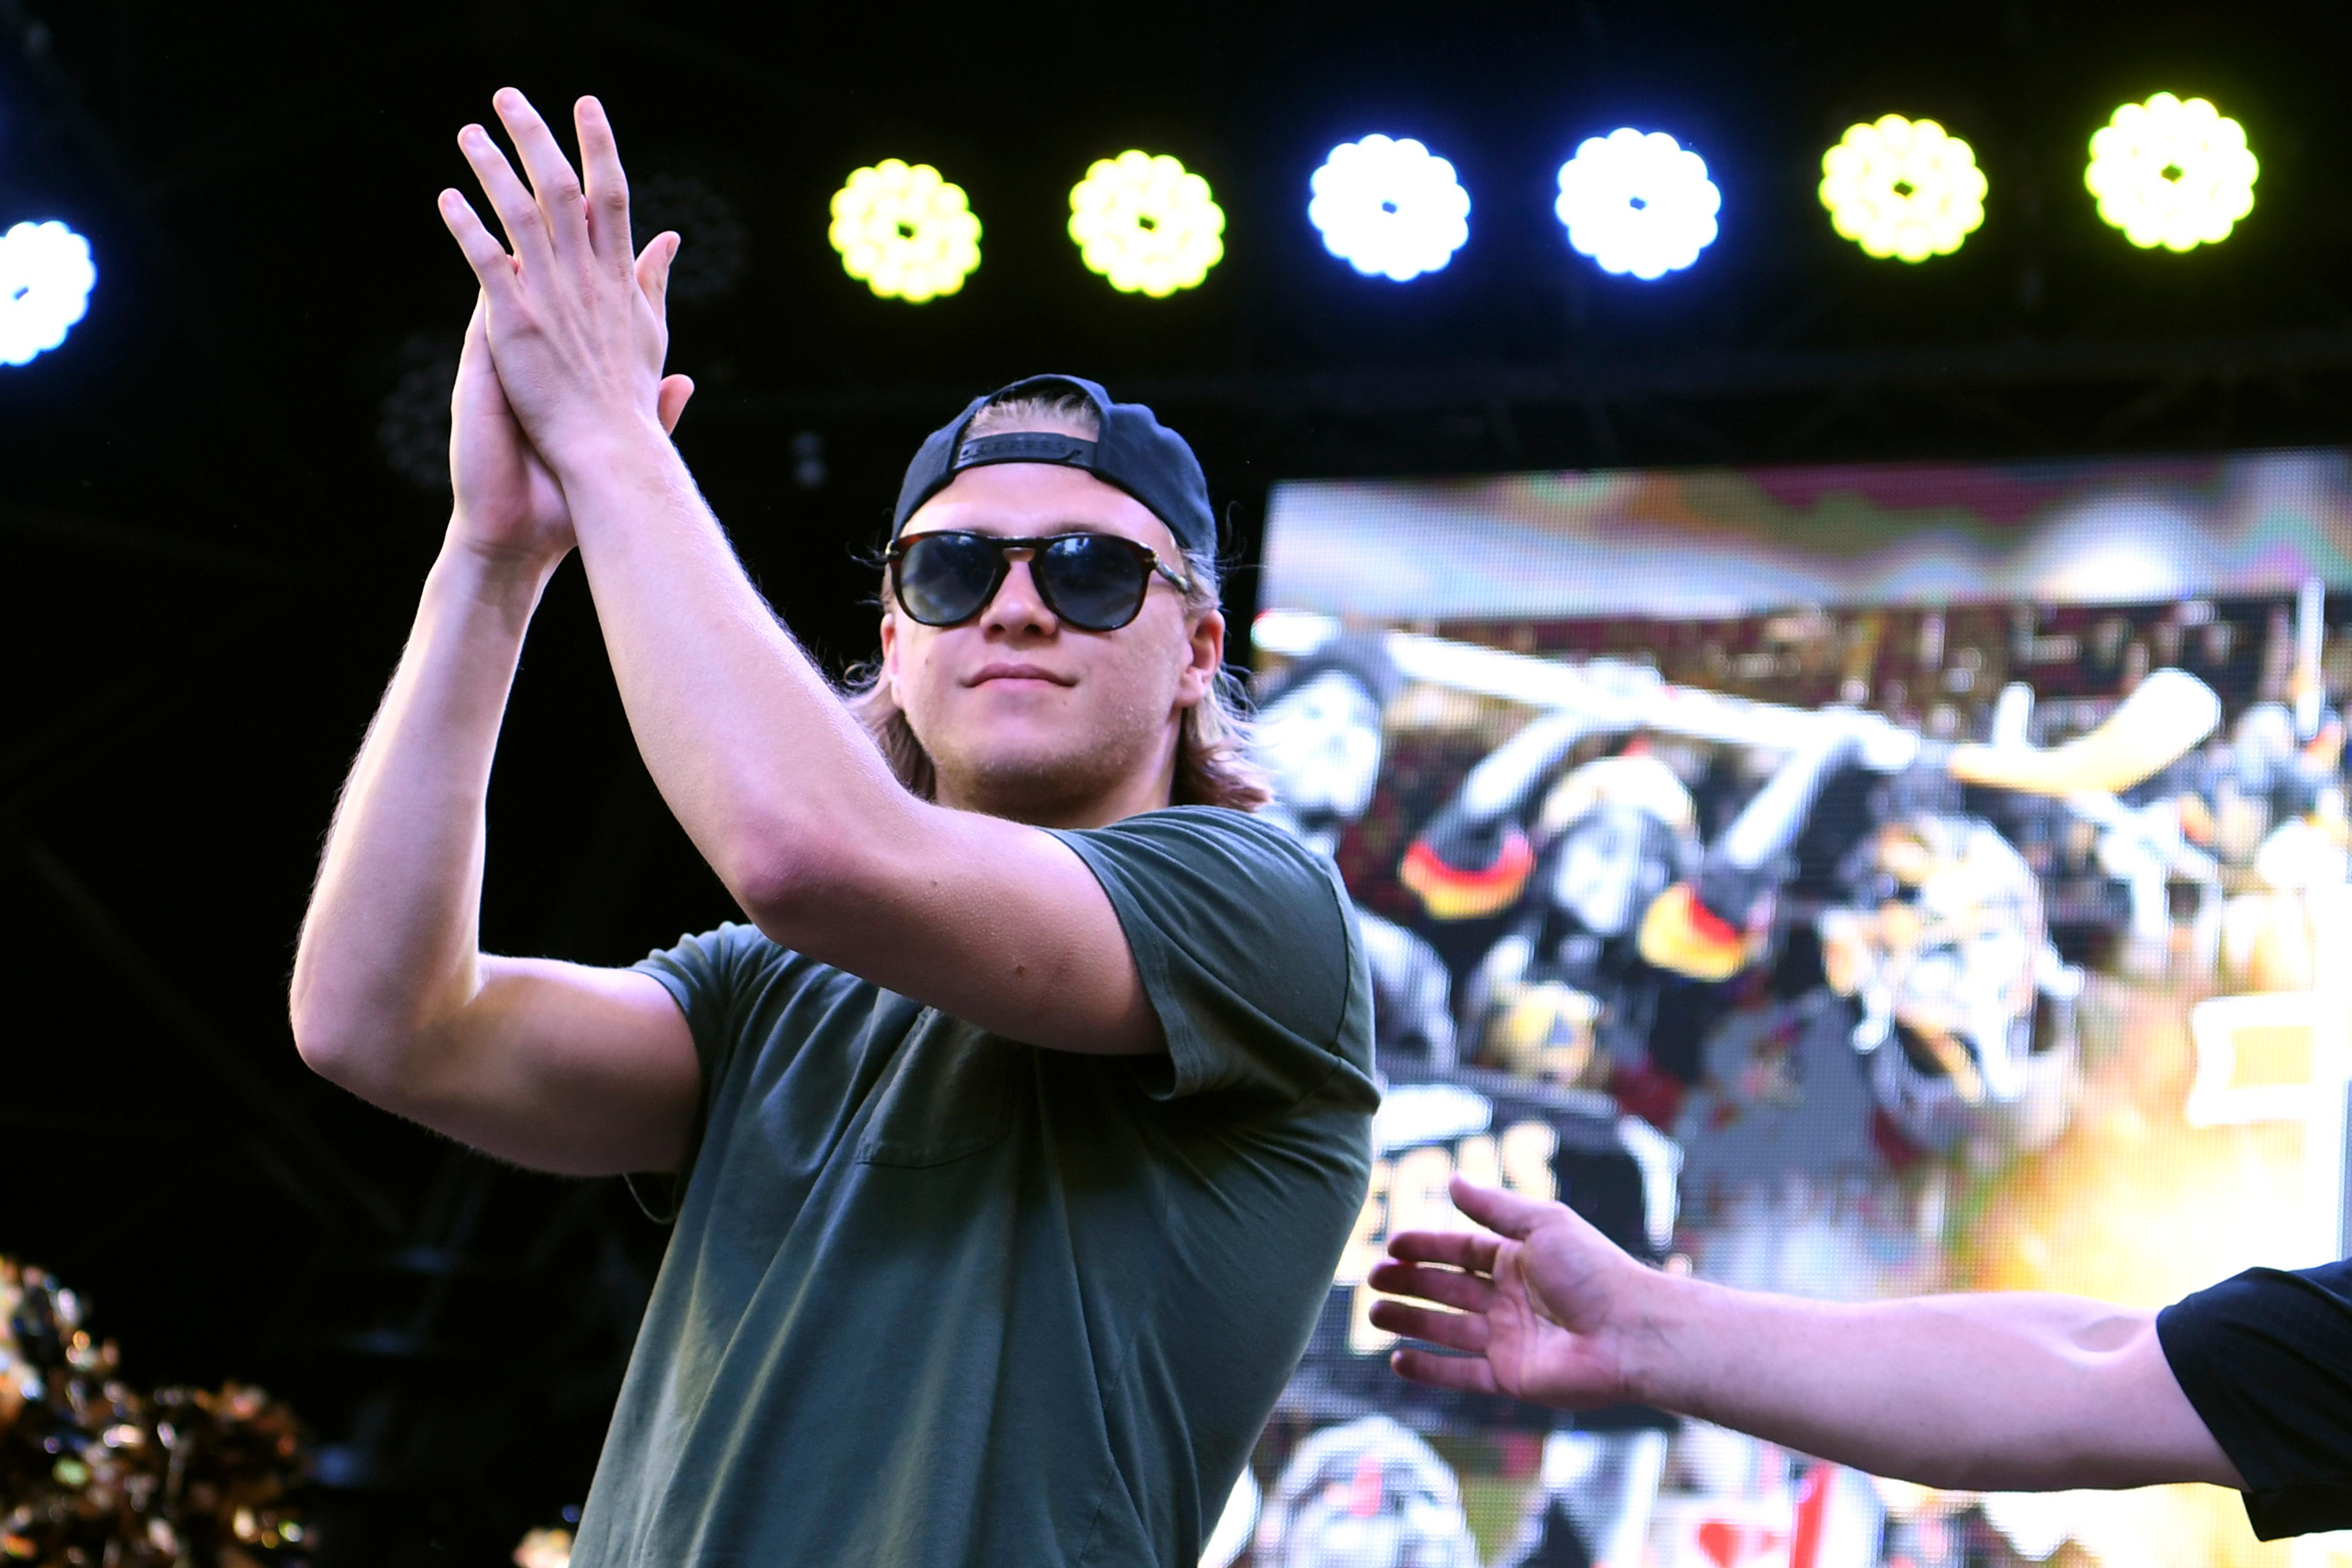 Vegas Golden Knights center William Karlsson salutes the estimated 7,500 fans during a Vegas Golden Knights Stick Salute to Vegas fan appreciation rally at the Fremont Street Experience Wednesday, June 13, 2018. CREDIT: Sam Morris/Las Vegas News Bureau